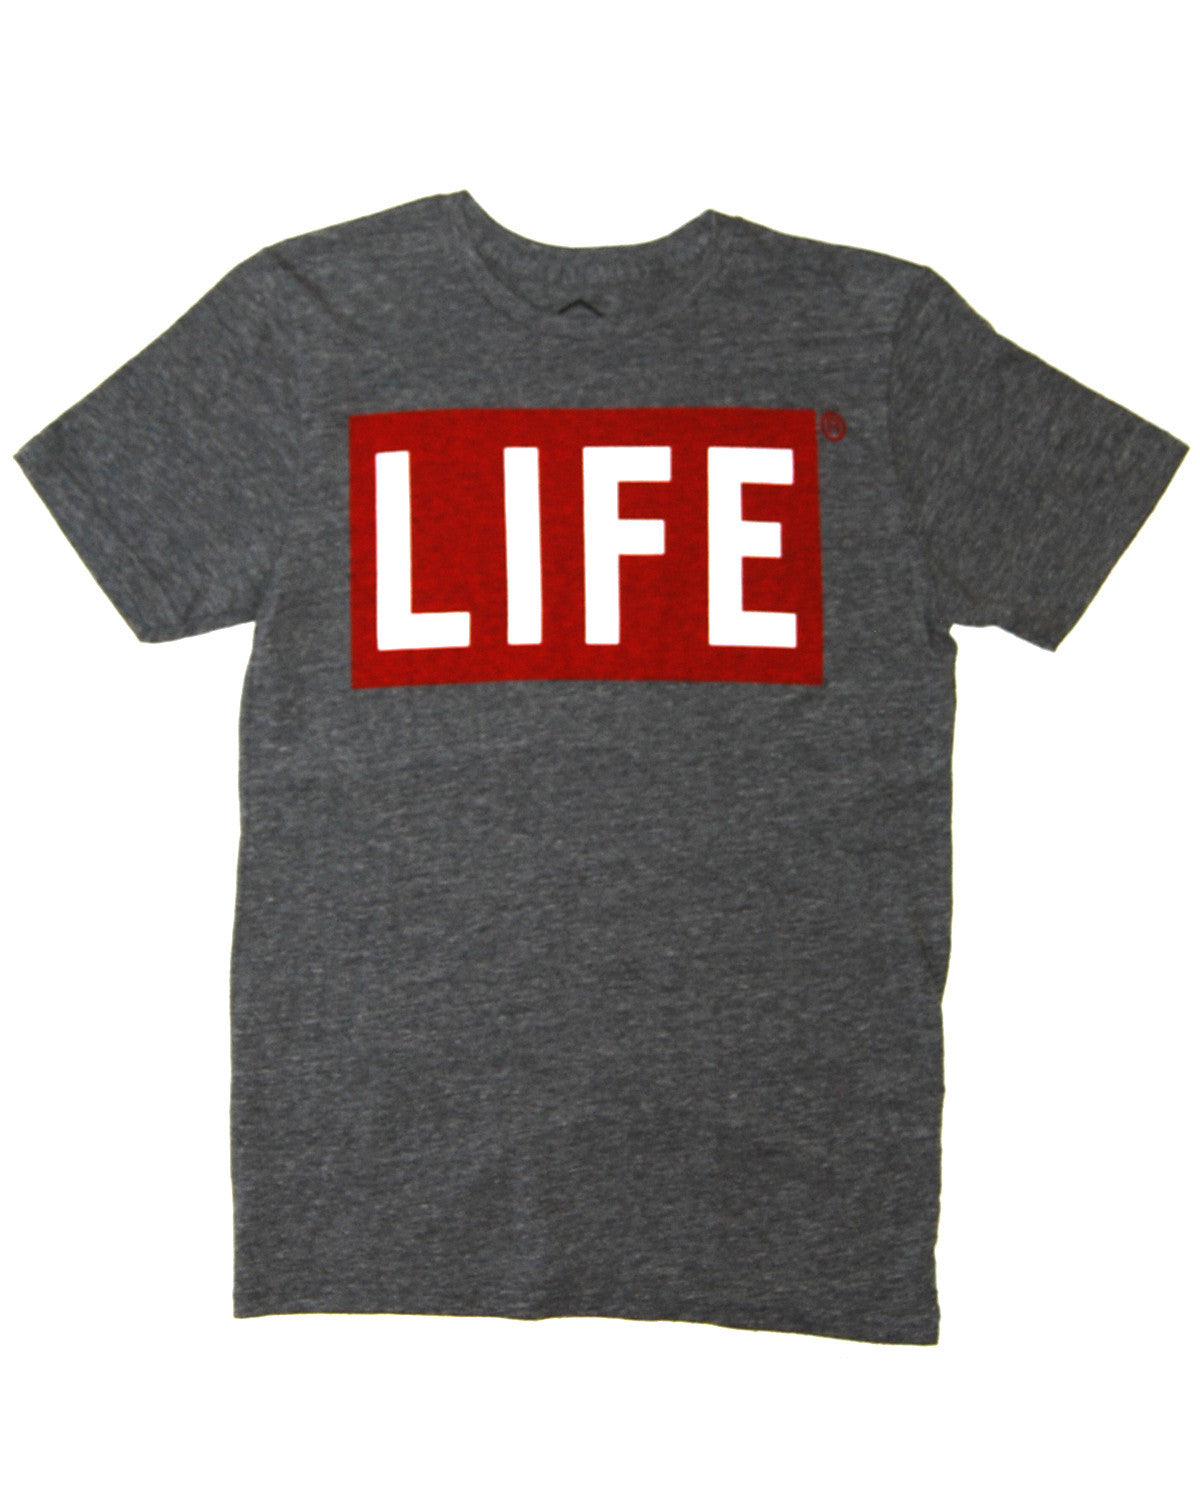 Altru Apparel graphic t-shirt LIFE two color logo vintage tee